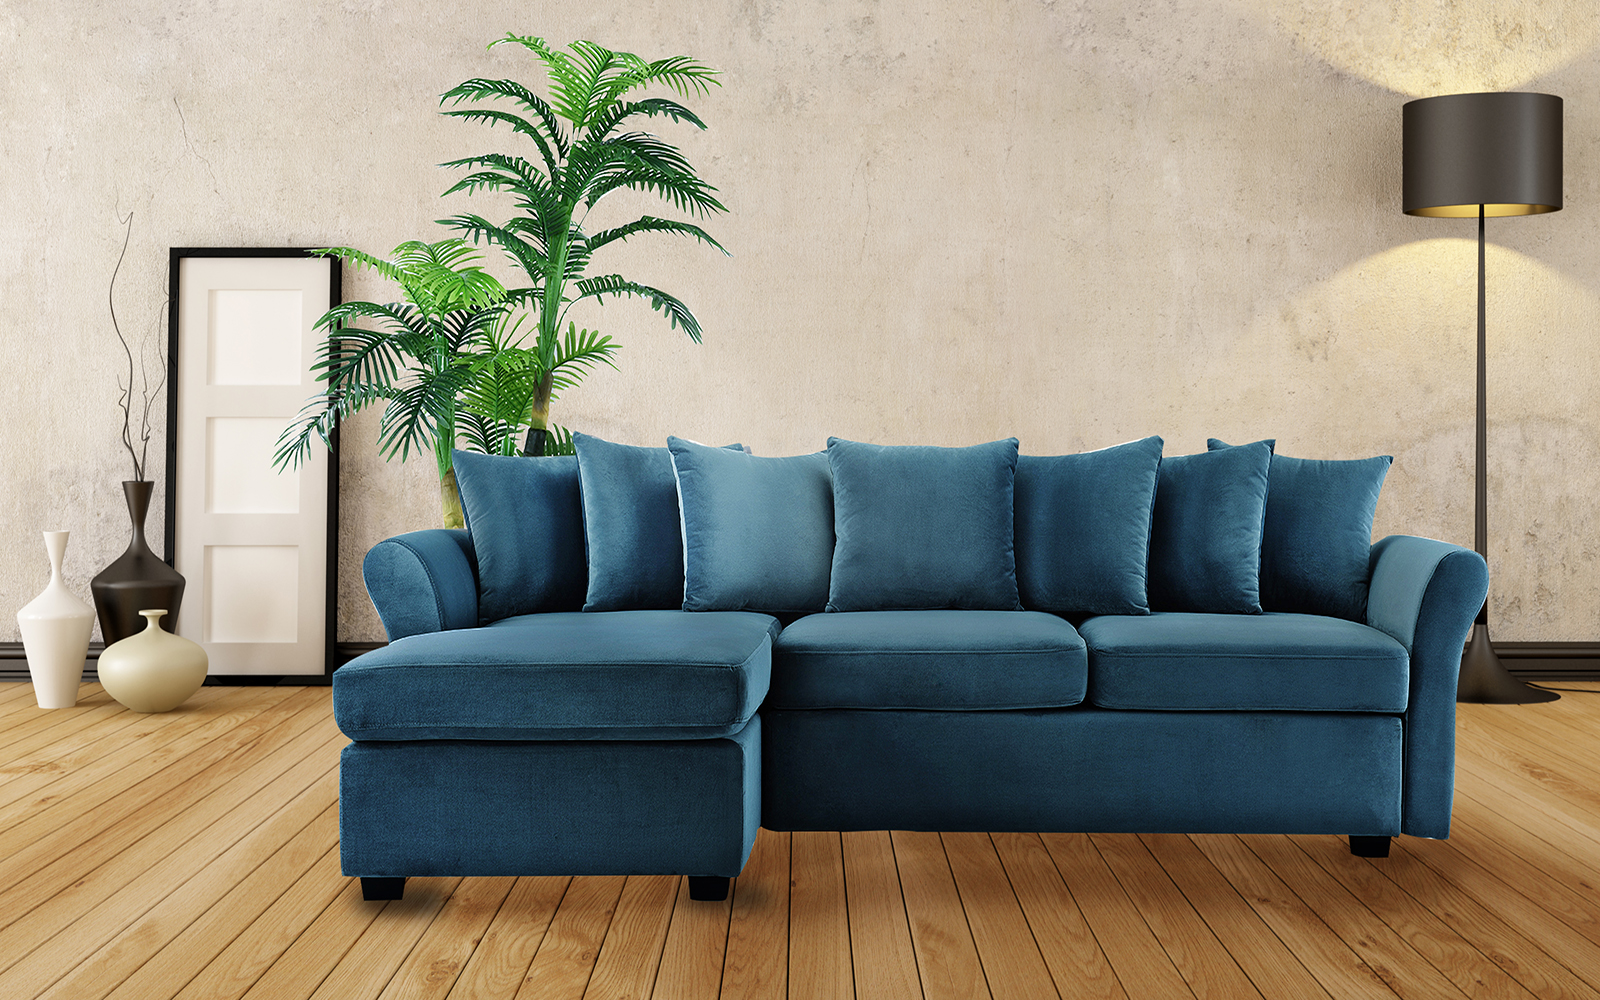 classic velvet sectional sofa large l shape couch with wide chaise lounge blue 649862748950 ebay. Black Bedroom Furniture Sets. Home Design Ideas